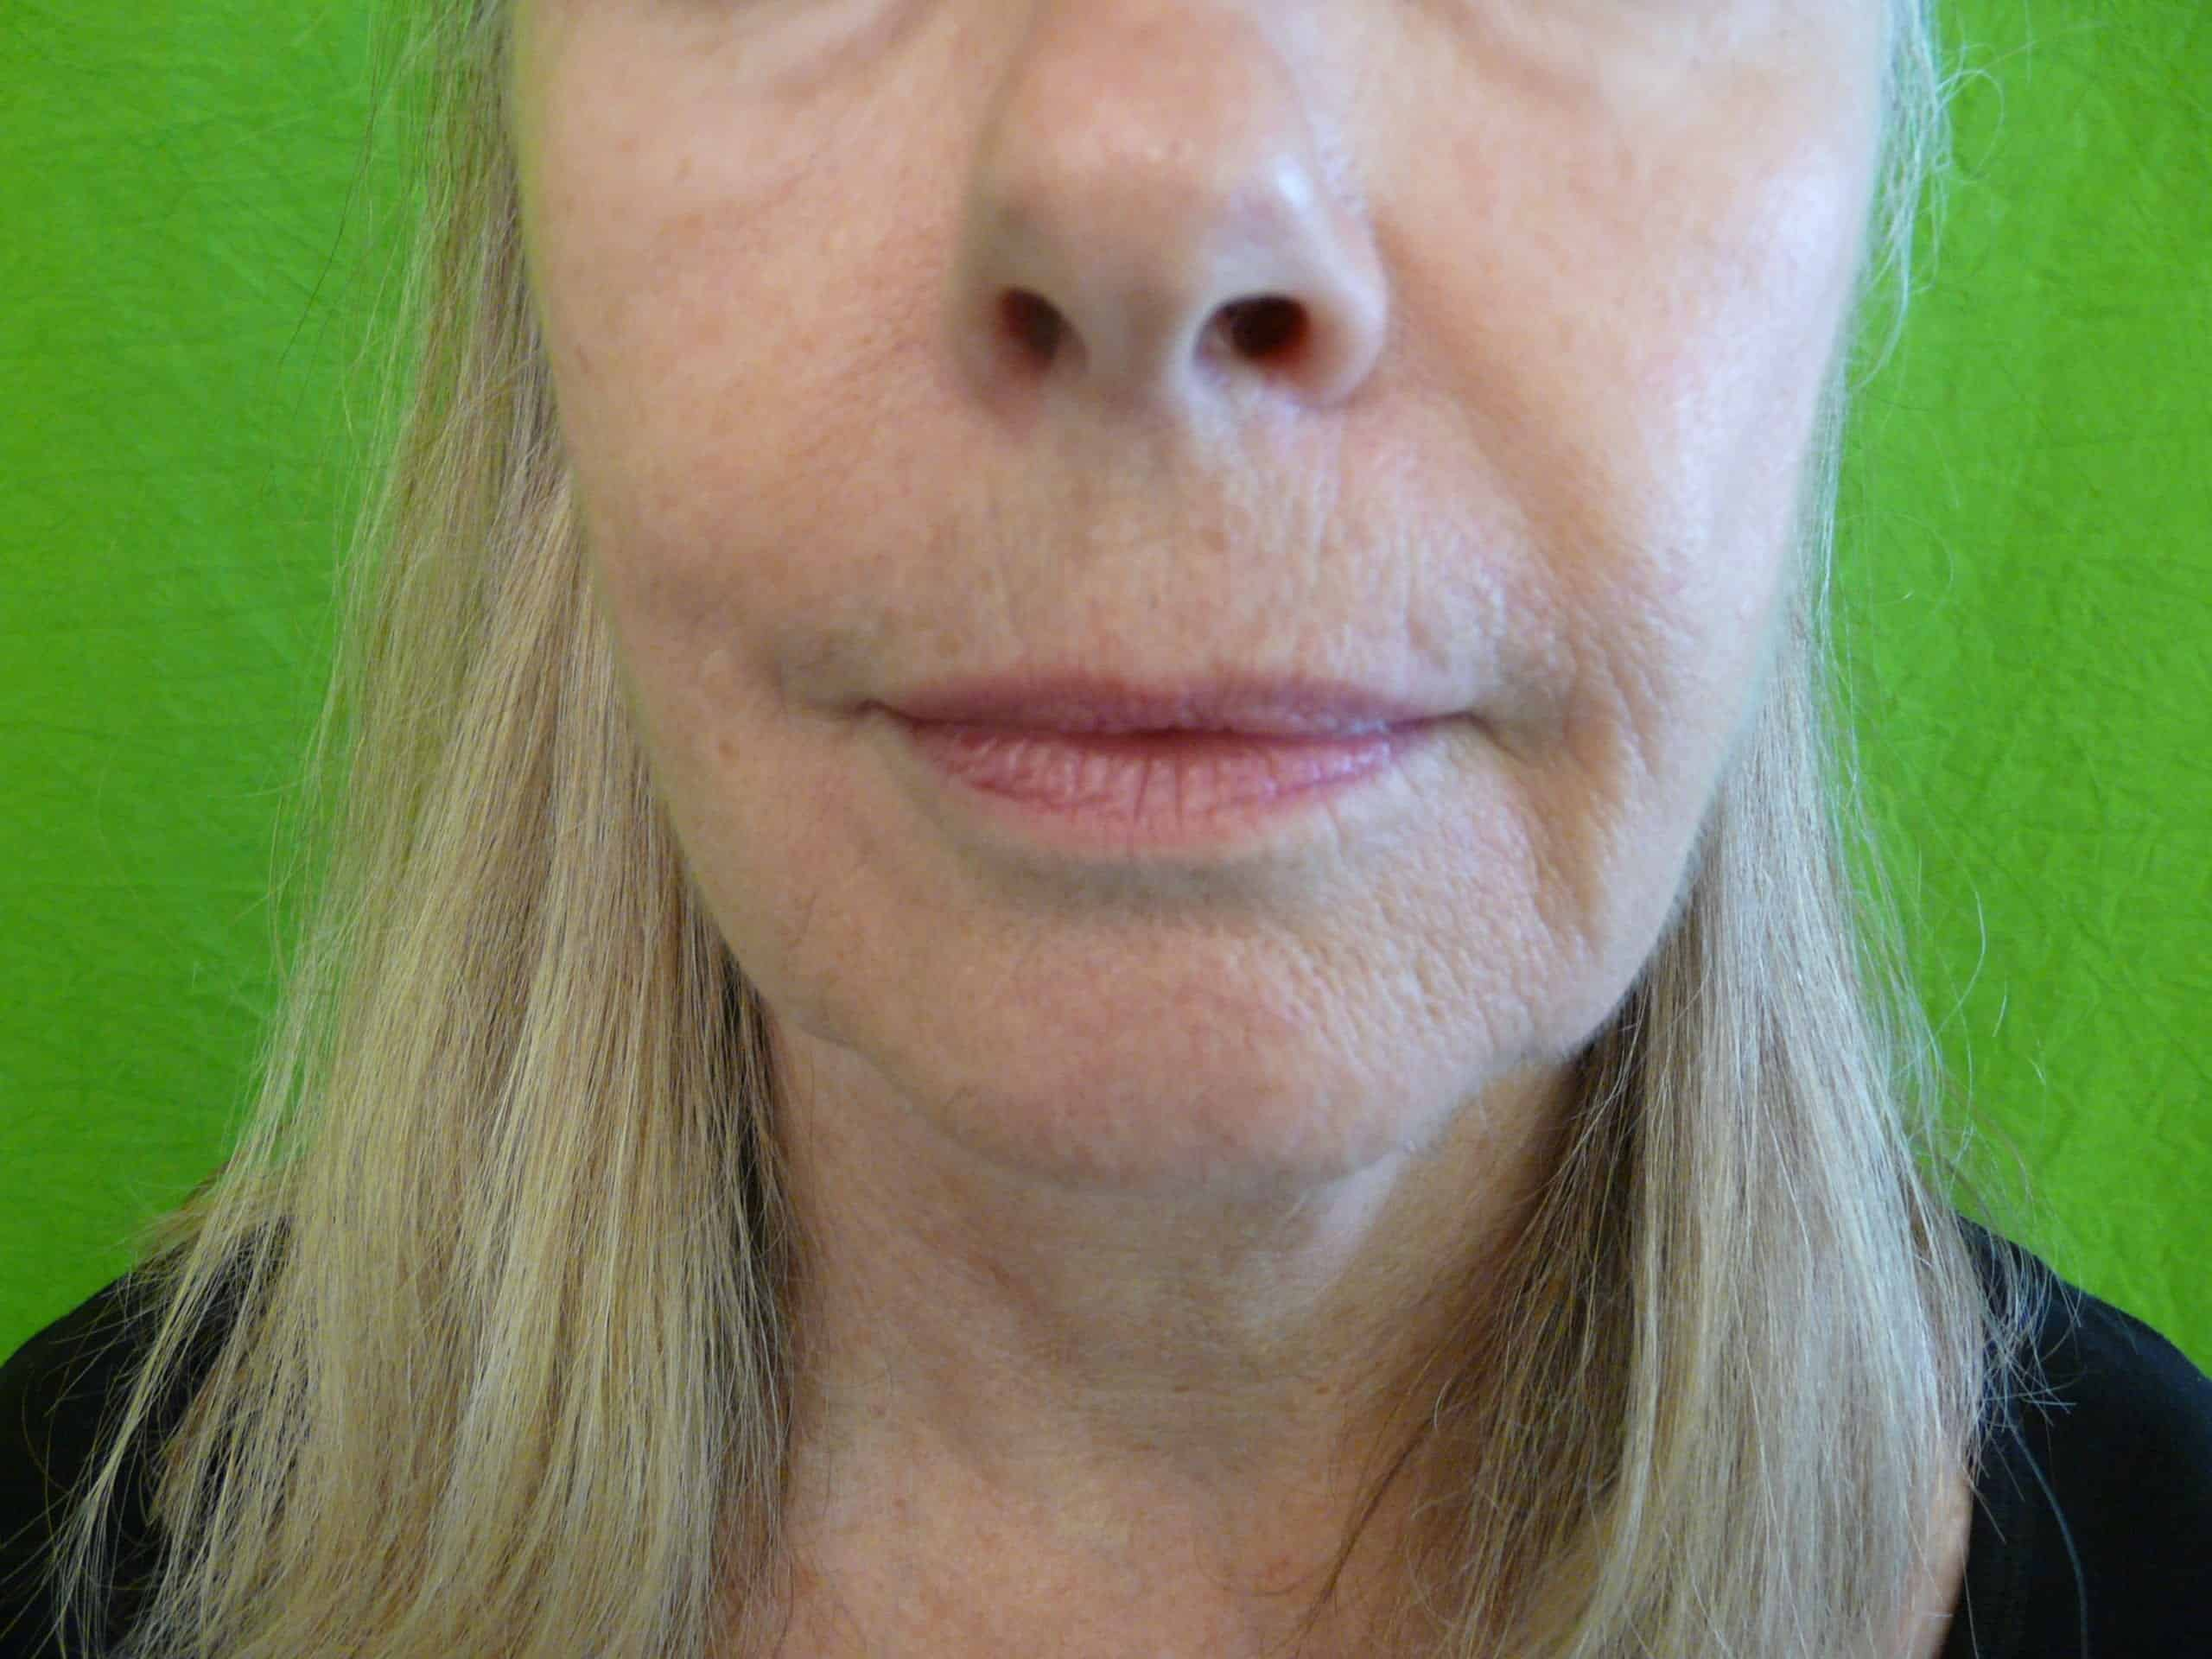 Best Treatment for a Sagging Jawline: Remove jowls with dermal fillers.